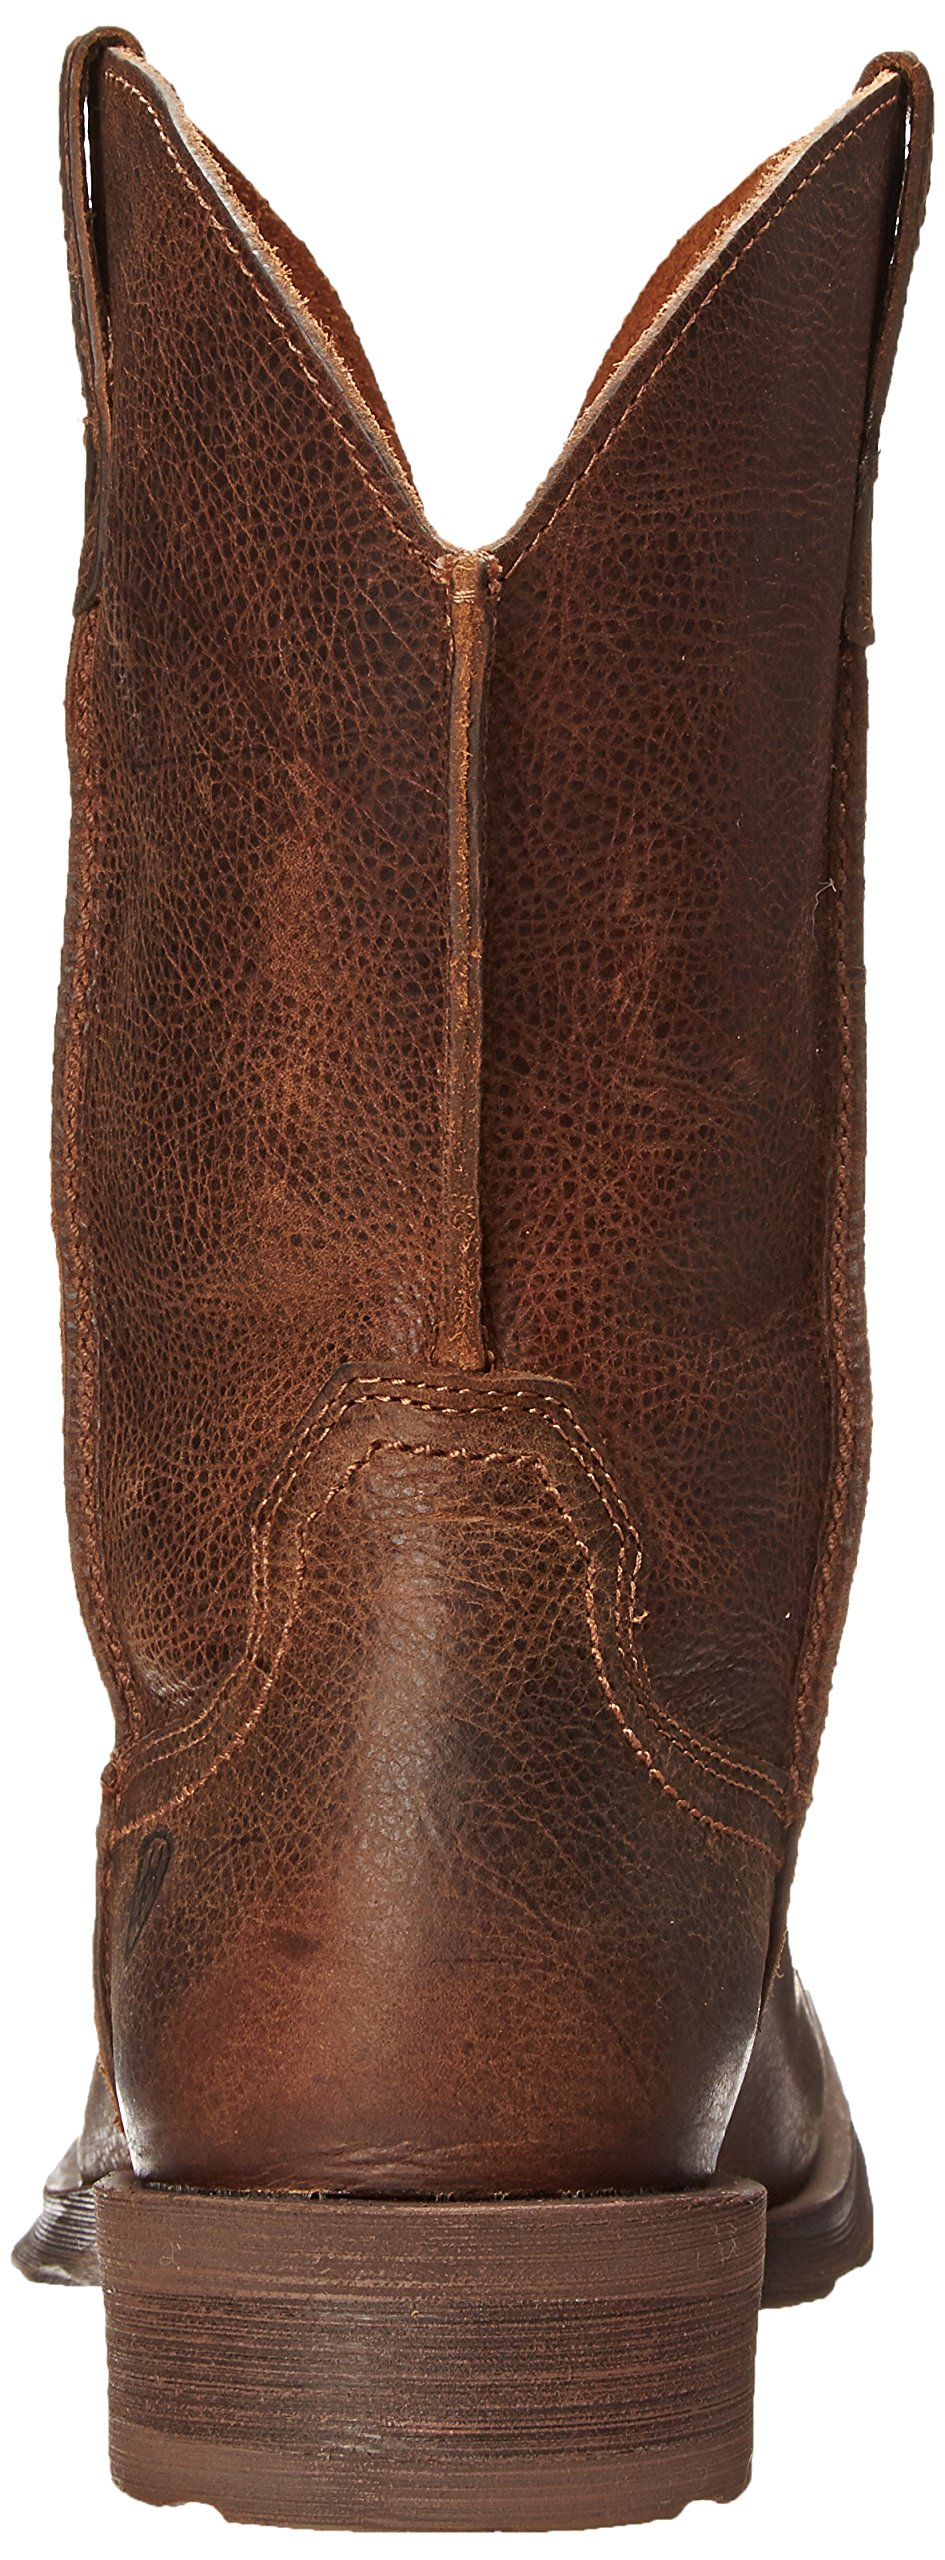 Ariat Men's Rambler Wide Square Toe Western Cowboy Boot, Wicker, 10 M US by ARIAT (Image #2)